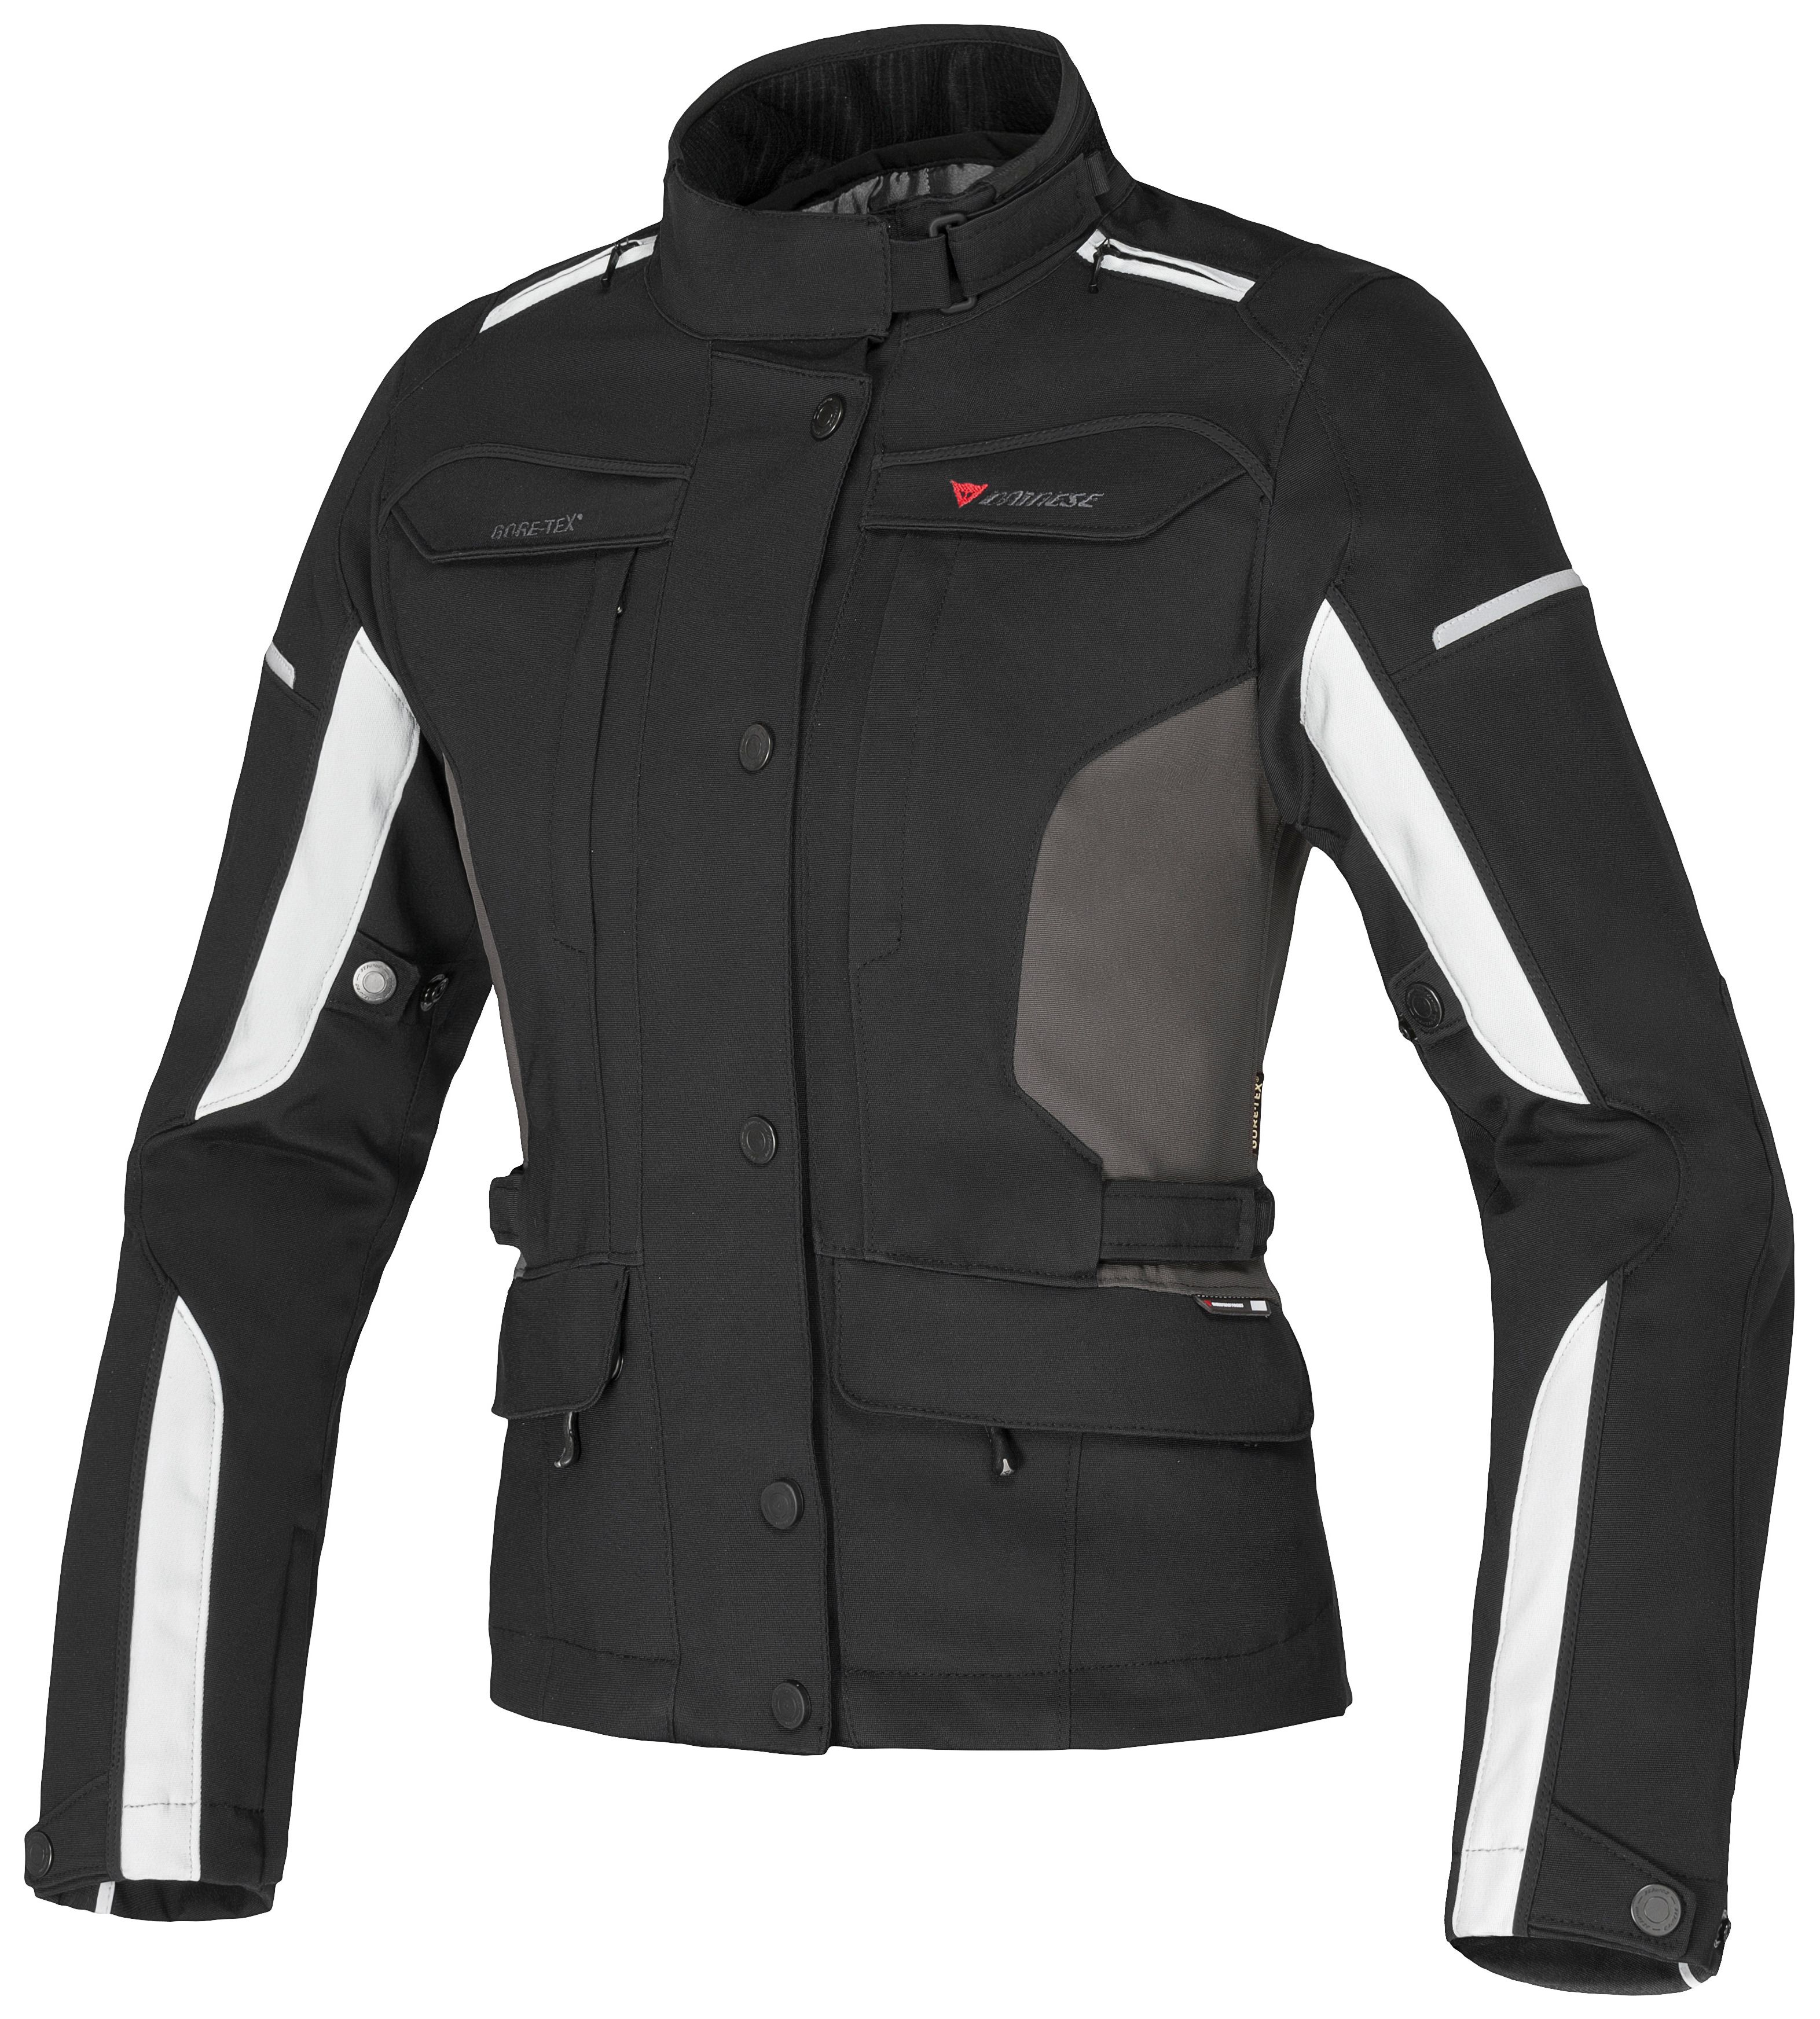 dainese zima gore tex women 39 s jacket size 40 only 25. Black Bedroom Furniture Sets. Home Design Ideas